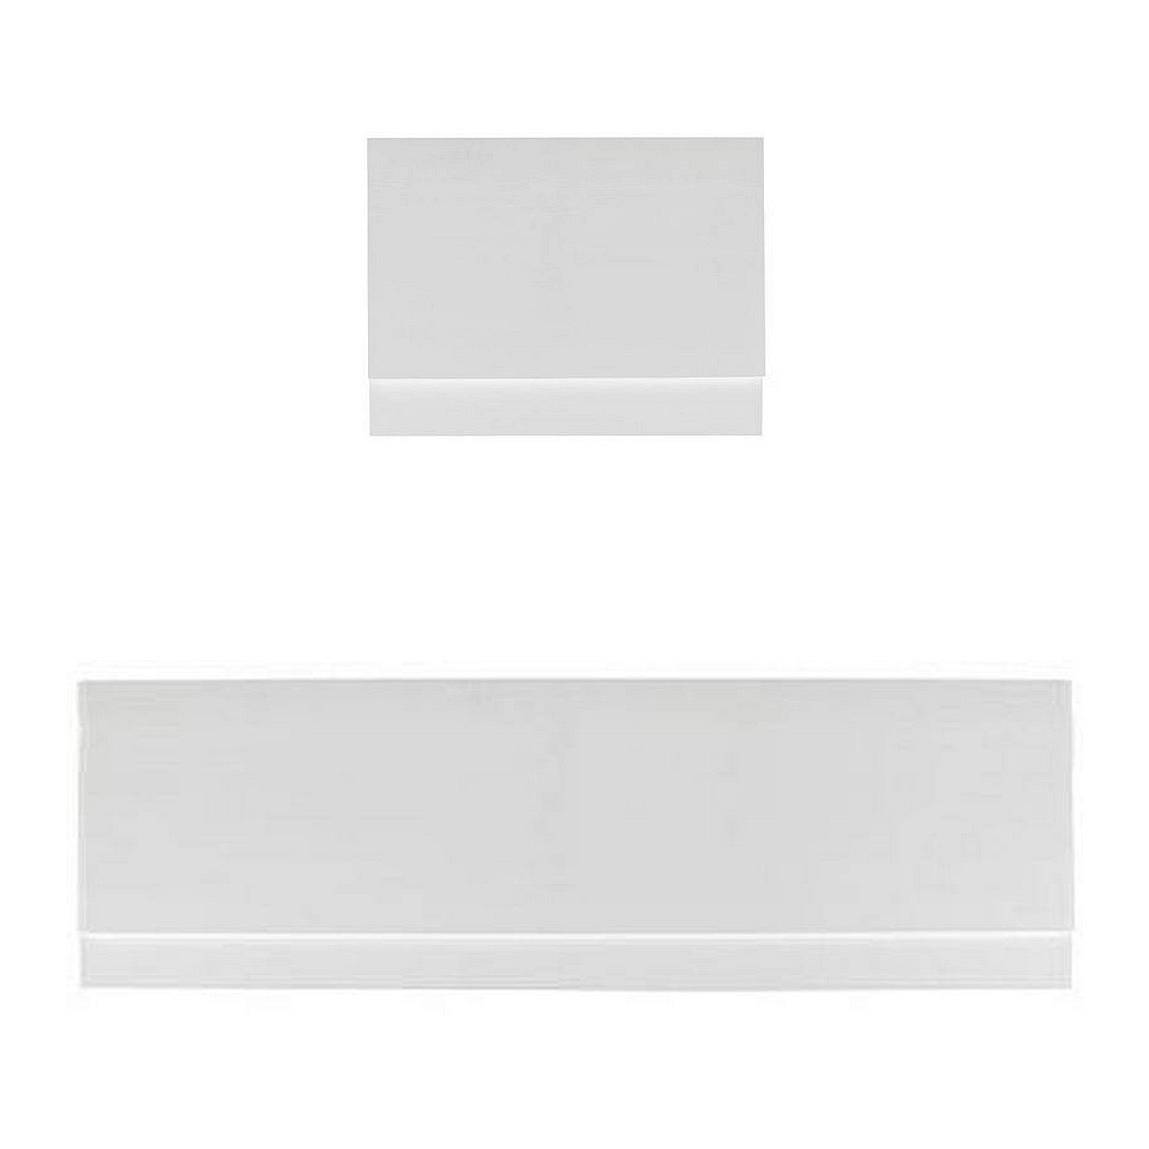 Image of Gloss White Straight Bath Panel Pack 1800 x 800